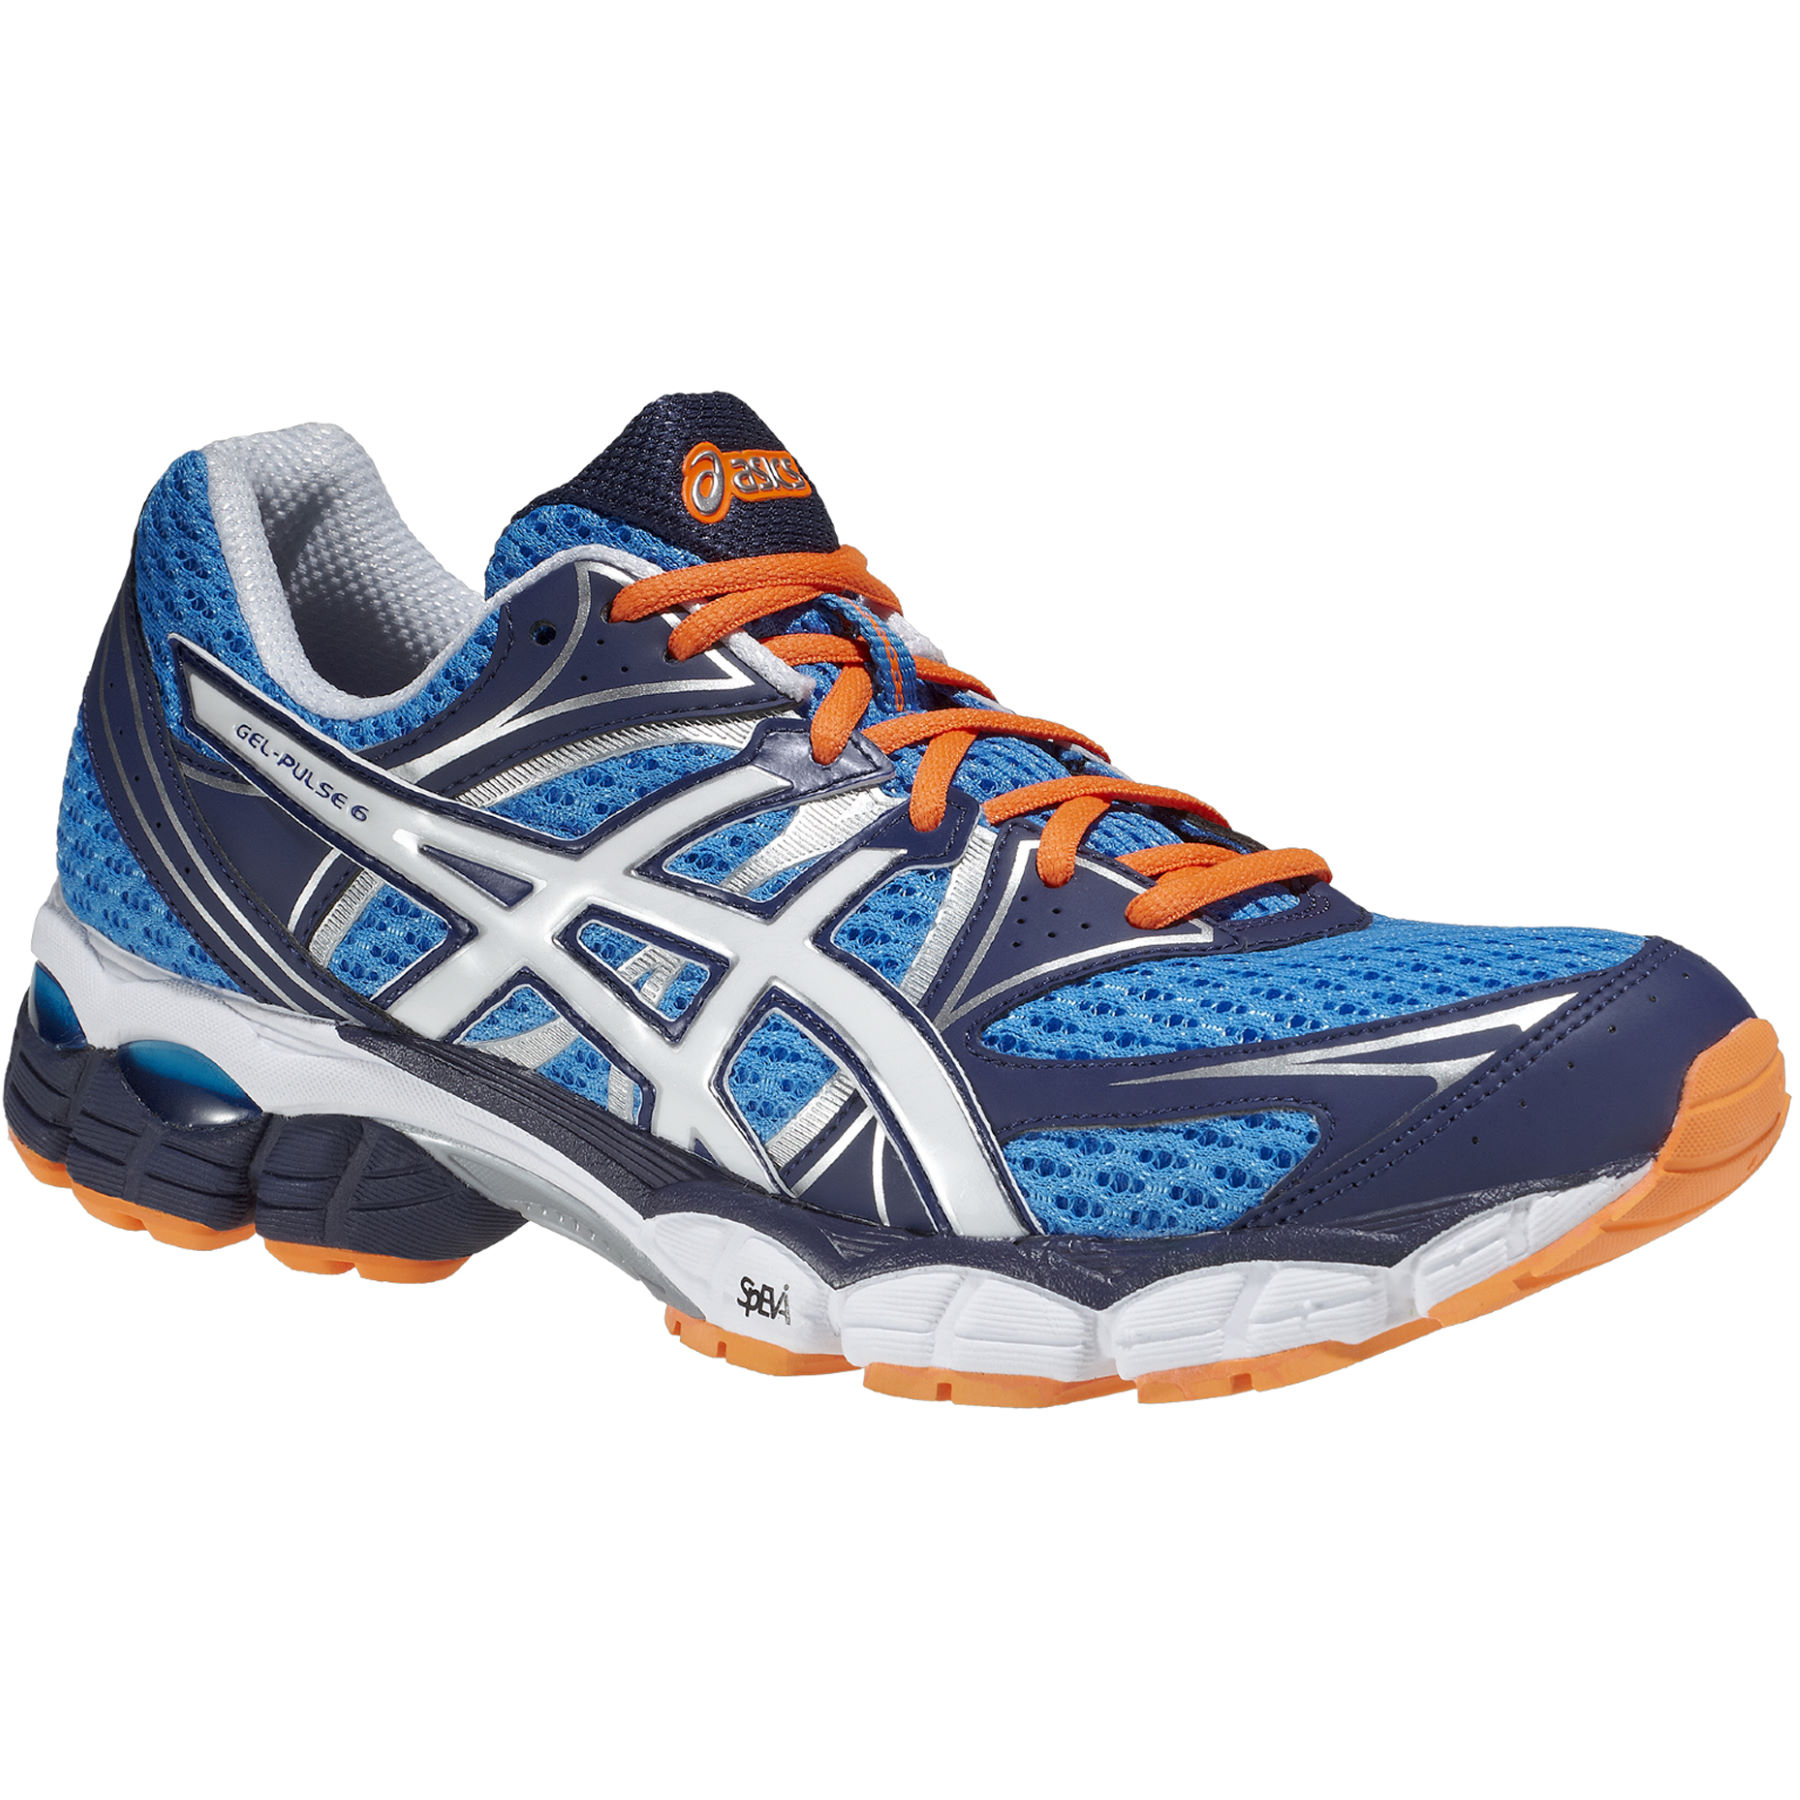 Zapatillas asics running 2014 zapatillas running asics gel - Asics Gel Pulse 6 Shoes Aw14